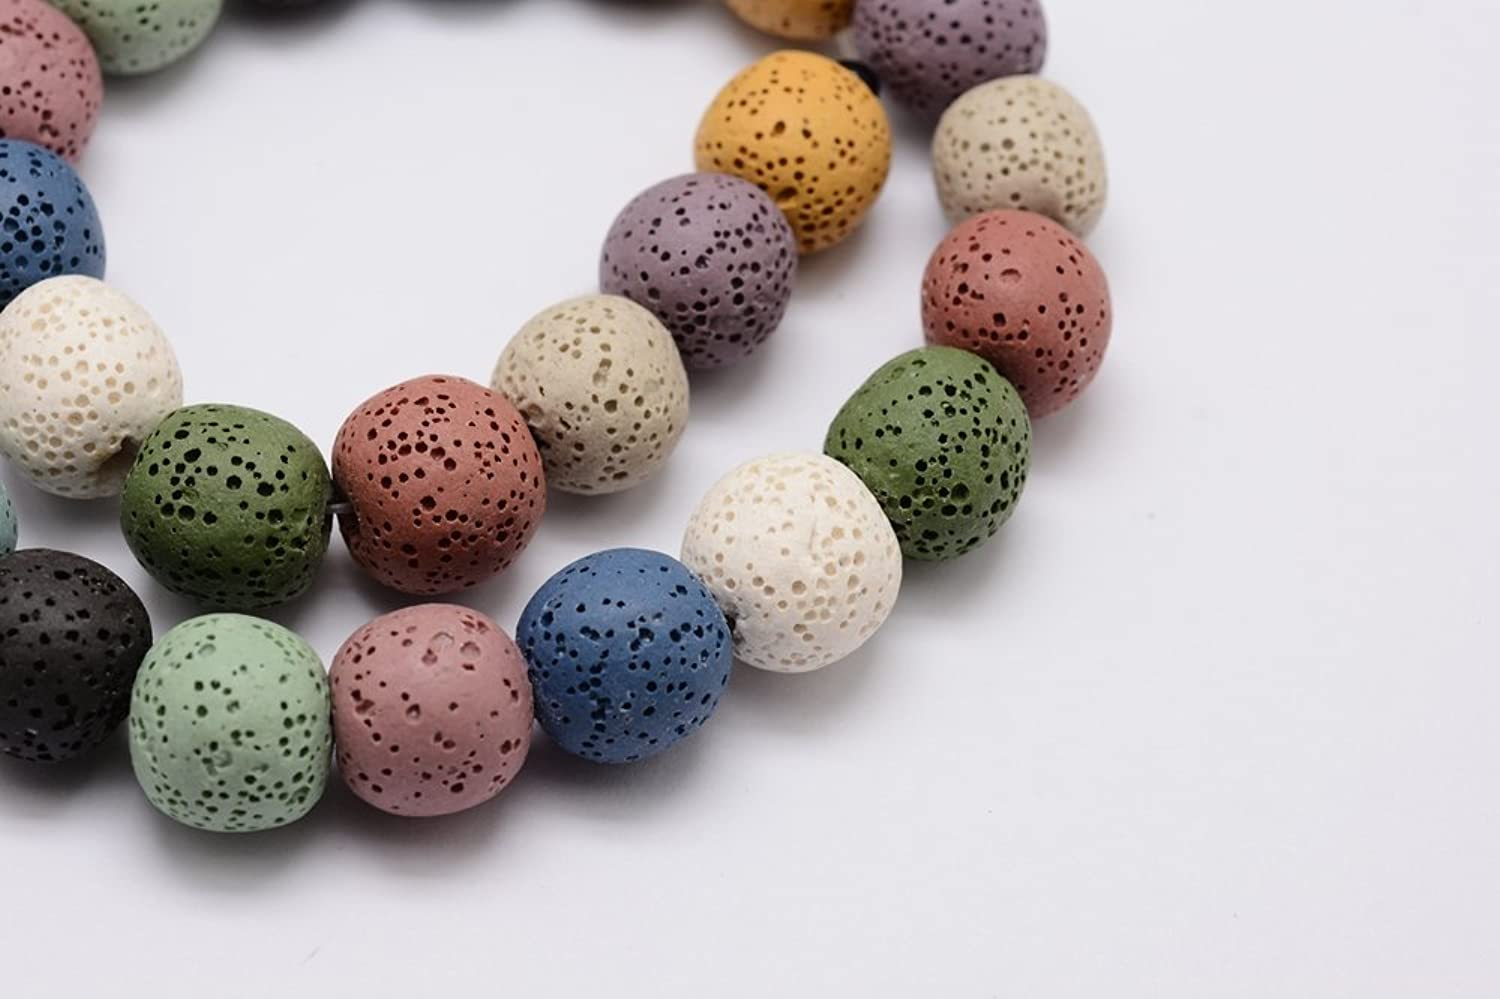 Mixed Colourot Dyed Lava 7-8mm Beads - Approx 50 Beads Enhanced - P00106XB B07BZZ2V5M | Online Outlet Shop